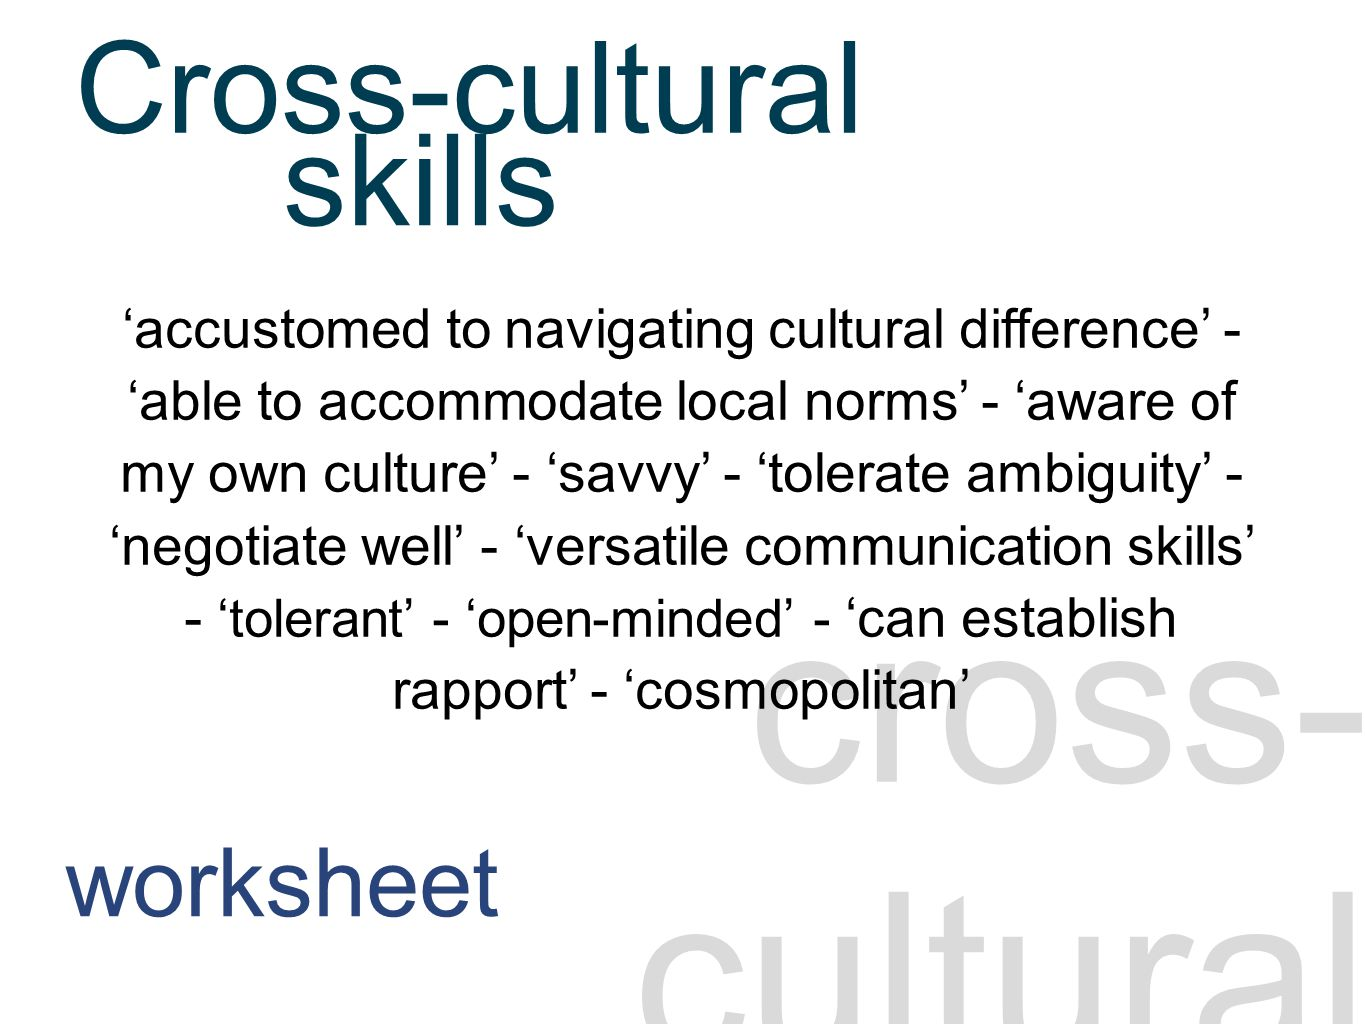 Cross-cultural skills 1 cross- cultural 'accustomed to navigating cultural difference' - 'able to accommodate local norms' - 'aware of my own culture' - 'savvy' - 'tolerate ambiguity' - 'negotiate well' - 'versatile communication skills' - 'tolerant' - 'open-minded' - 'can establish rapport' - 'cosmopolitan' skills Cross-cultural worksheet